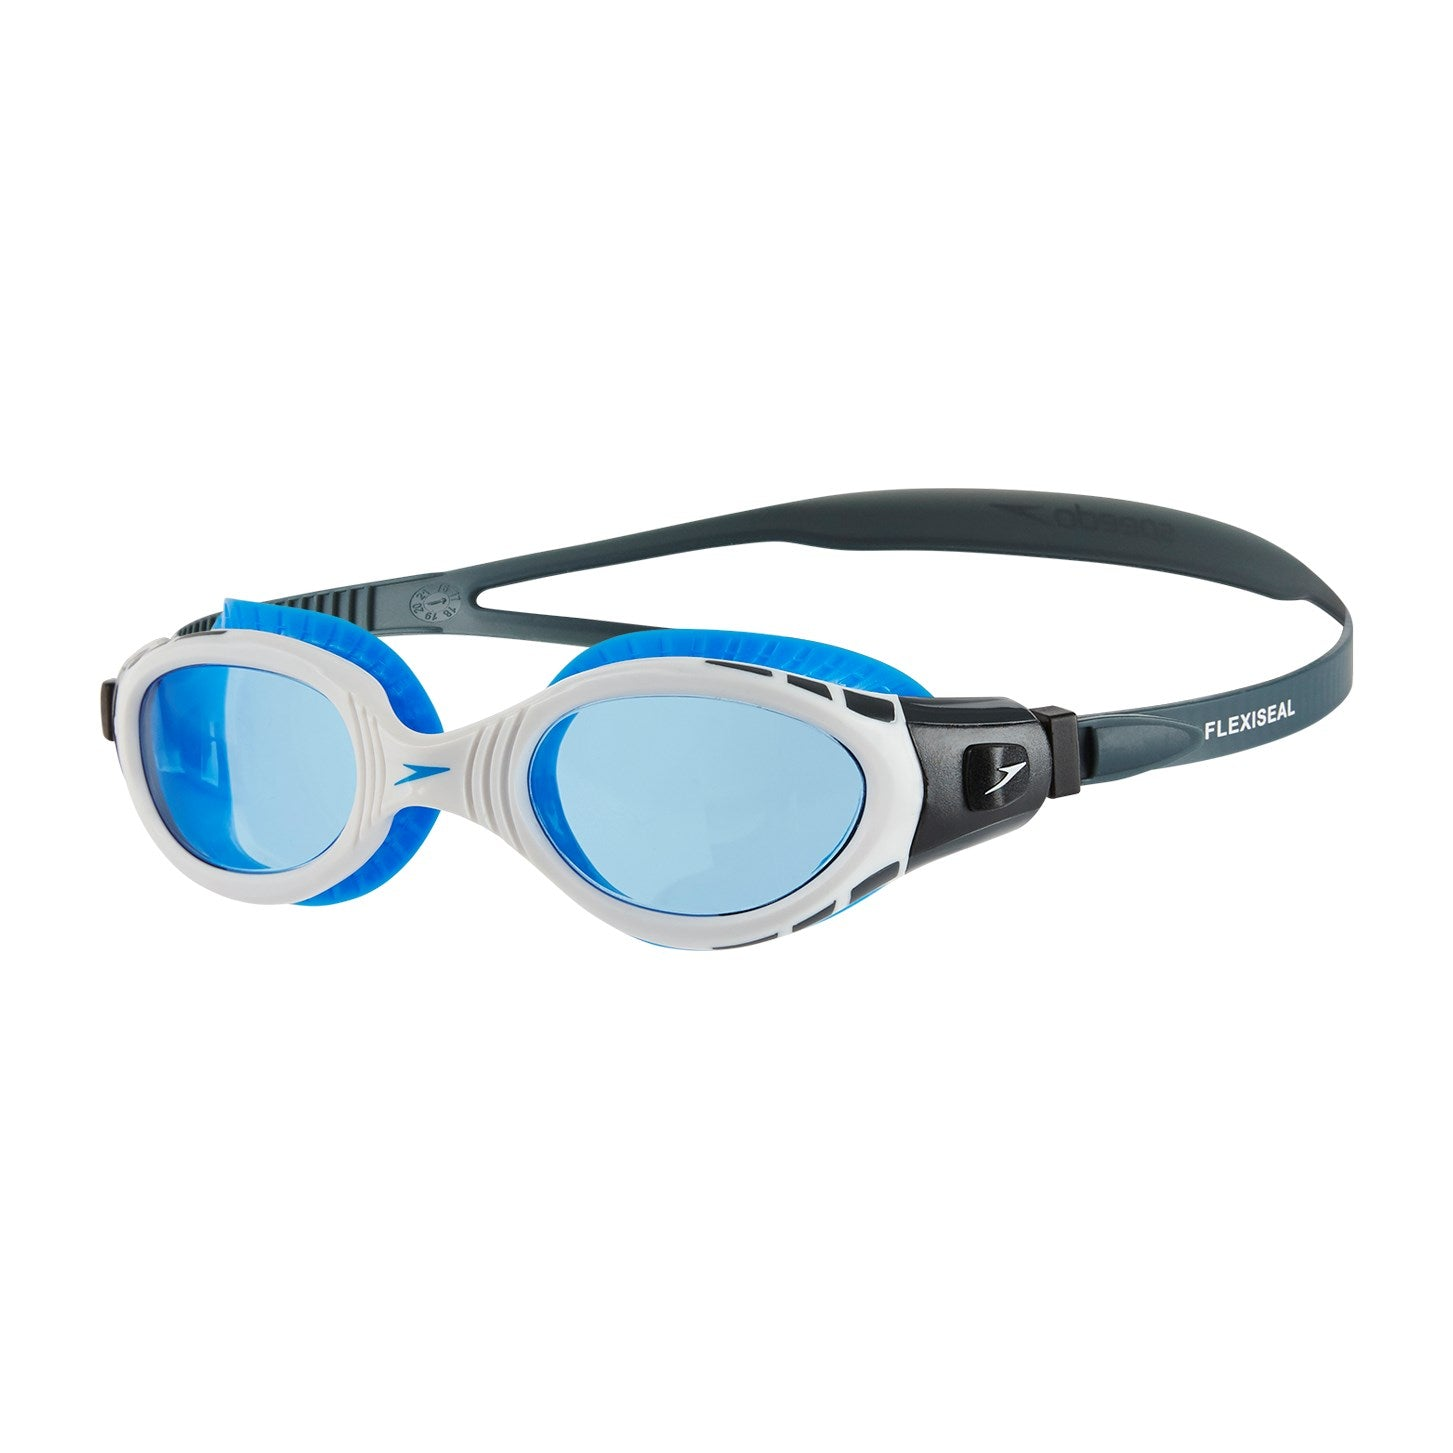 SPEEDO Googles FUTURA BIOFUSE FLEXISEAL 11315